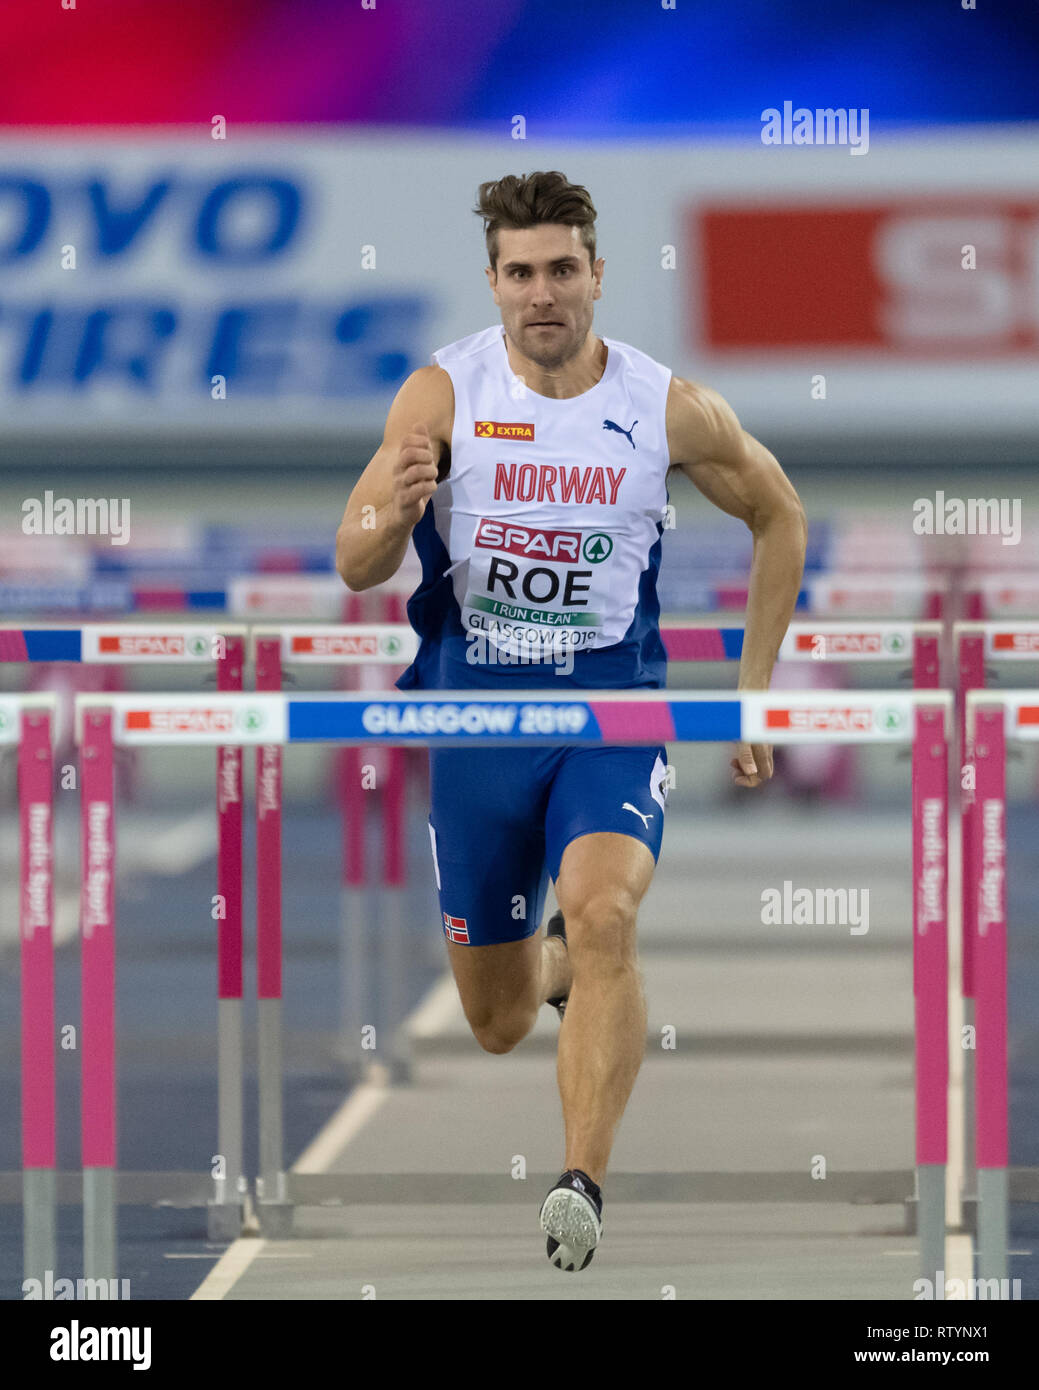 Glasgow, Scotland, UK. 3rd March, 2019. Glasgow, UK. 03rd Mar, 2019. Martin Roe (NOR) in Men's Heptathlon - 60m Hurdles heats during European Athletics Indoor Championships Glasgow 2019 at Emirates Arena on Sunday, 03 March 2019. GLASGOW SCOTLAND.  (Editorial use only, license required for commercial use. No use in betting, games or a single club/league/player publications.) Credit: Taka G Wu/Alamy News Credit: Taka Wu/Alamy Live News - Stock Image